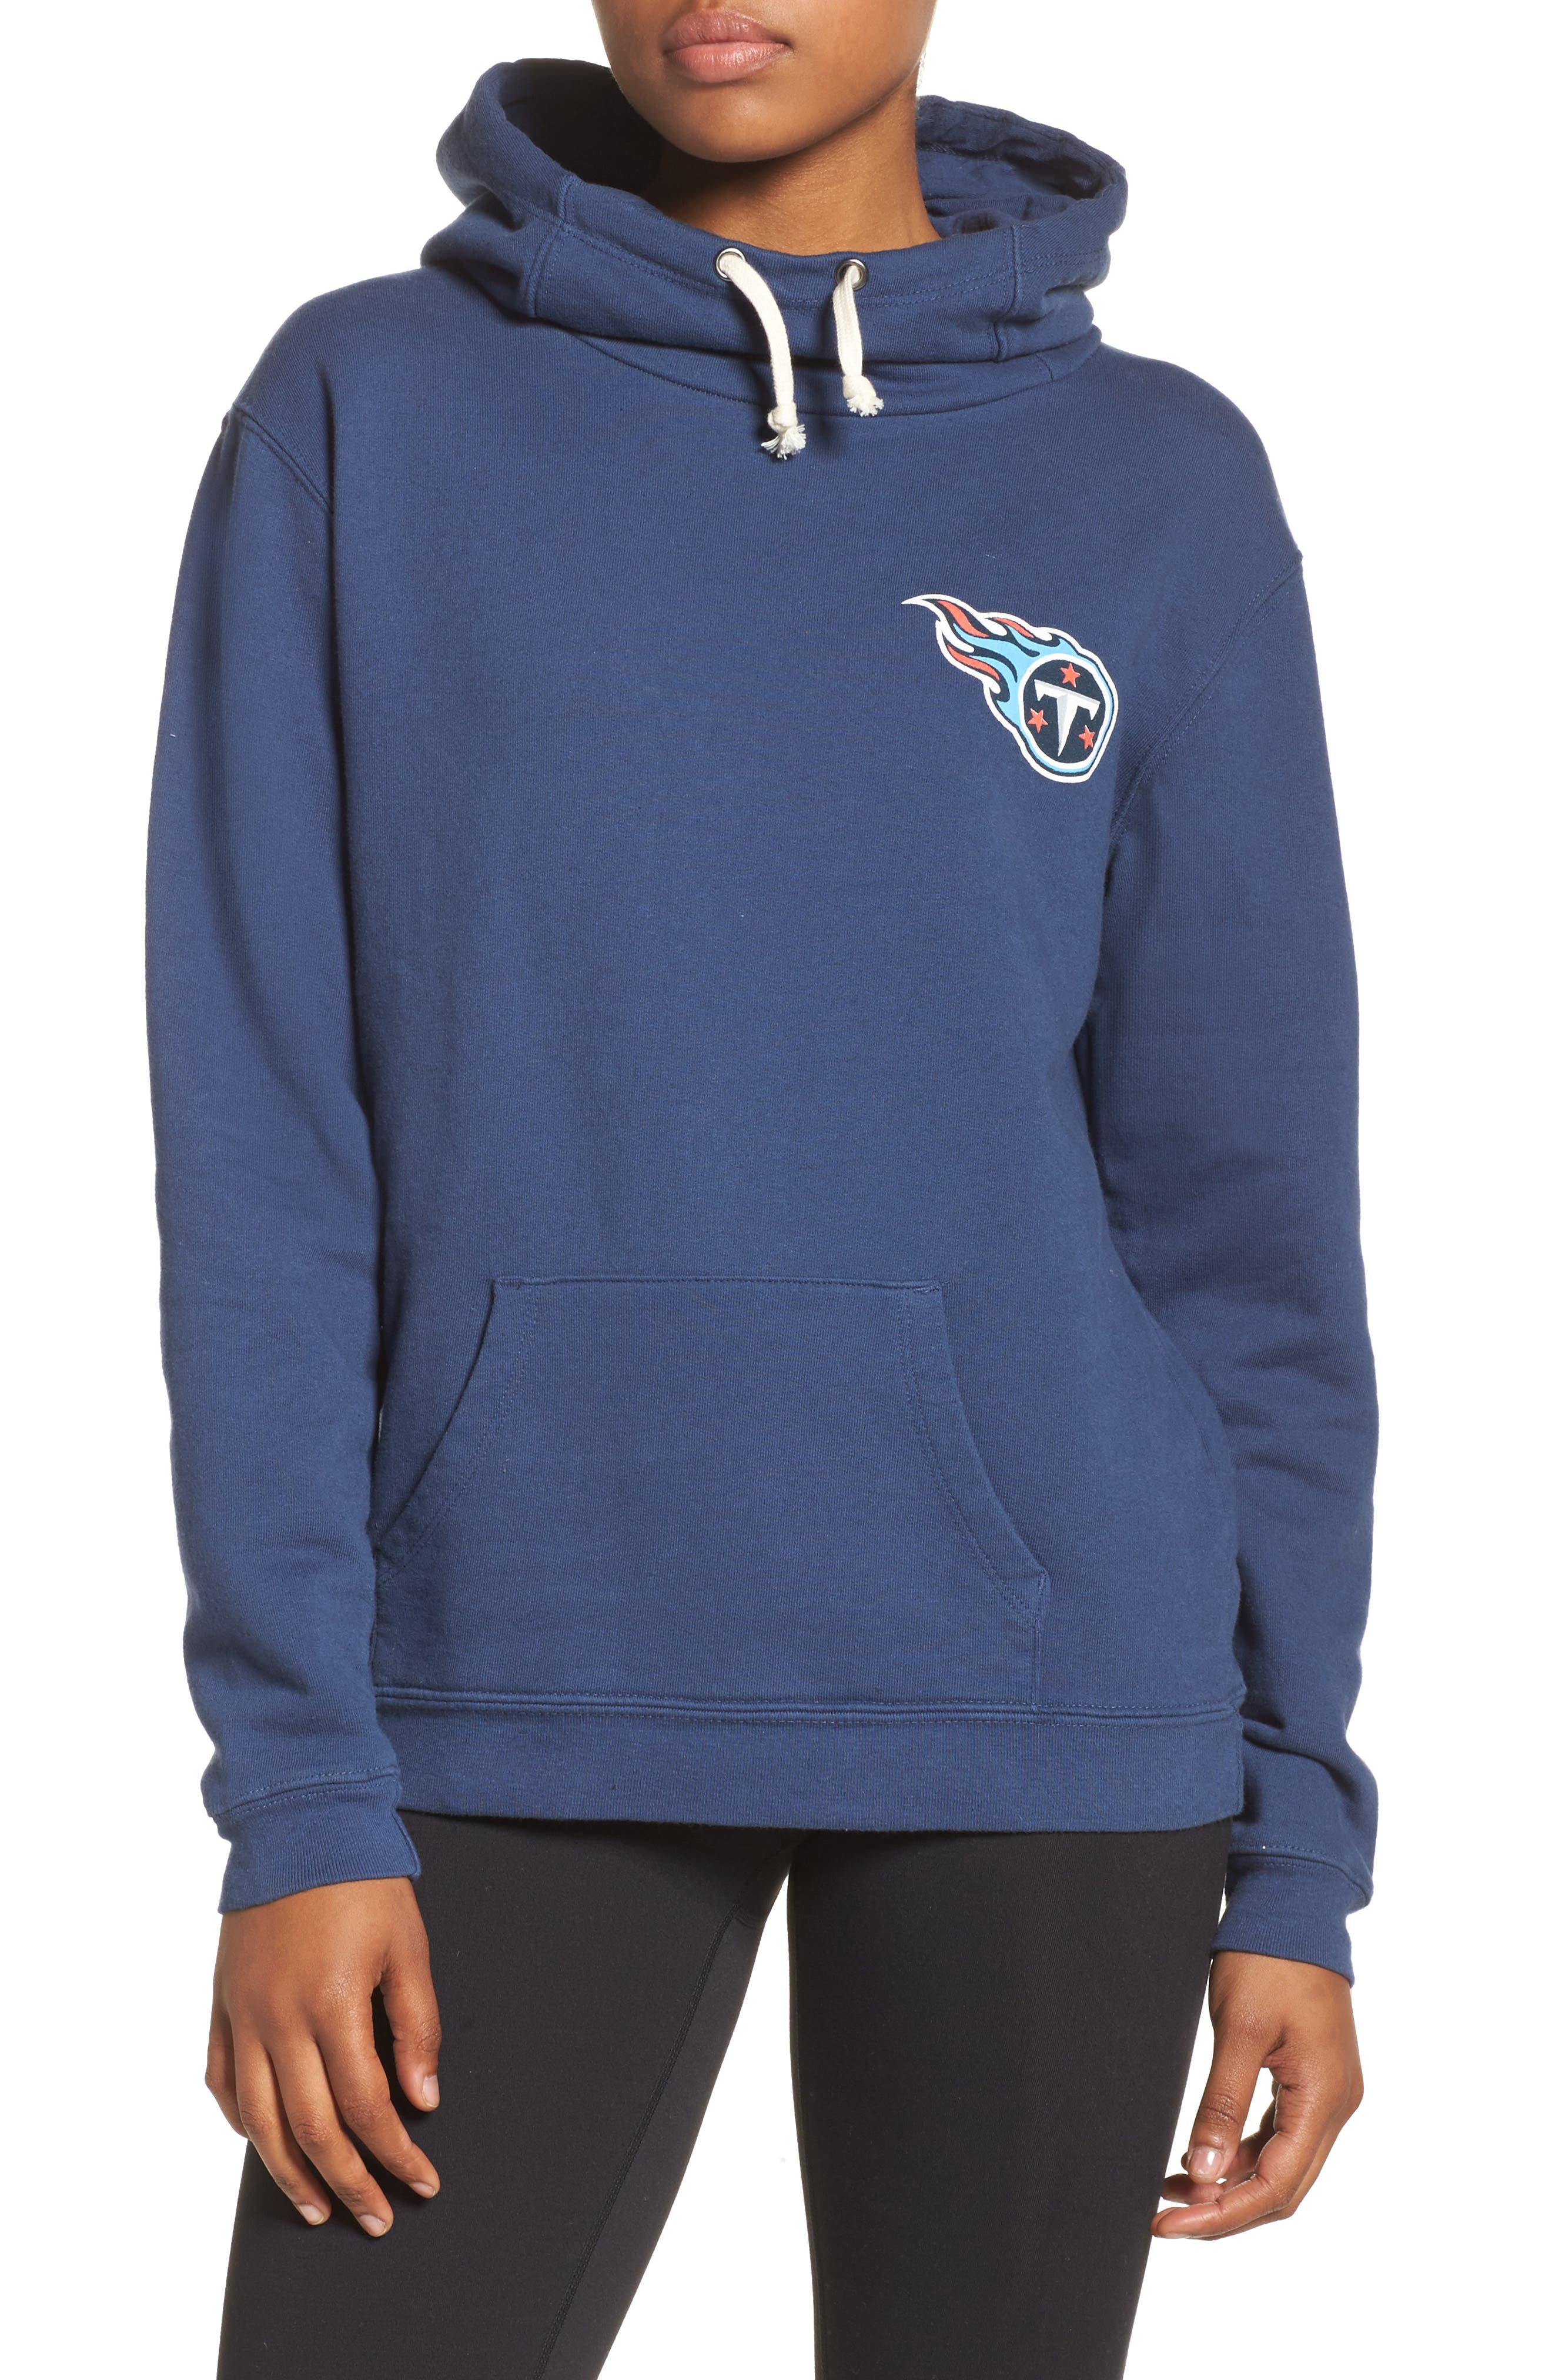 NFL Tennessee Titans Sunday Hoodie,                             Main thumbnail 1, color,                             True Navy